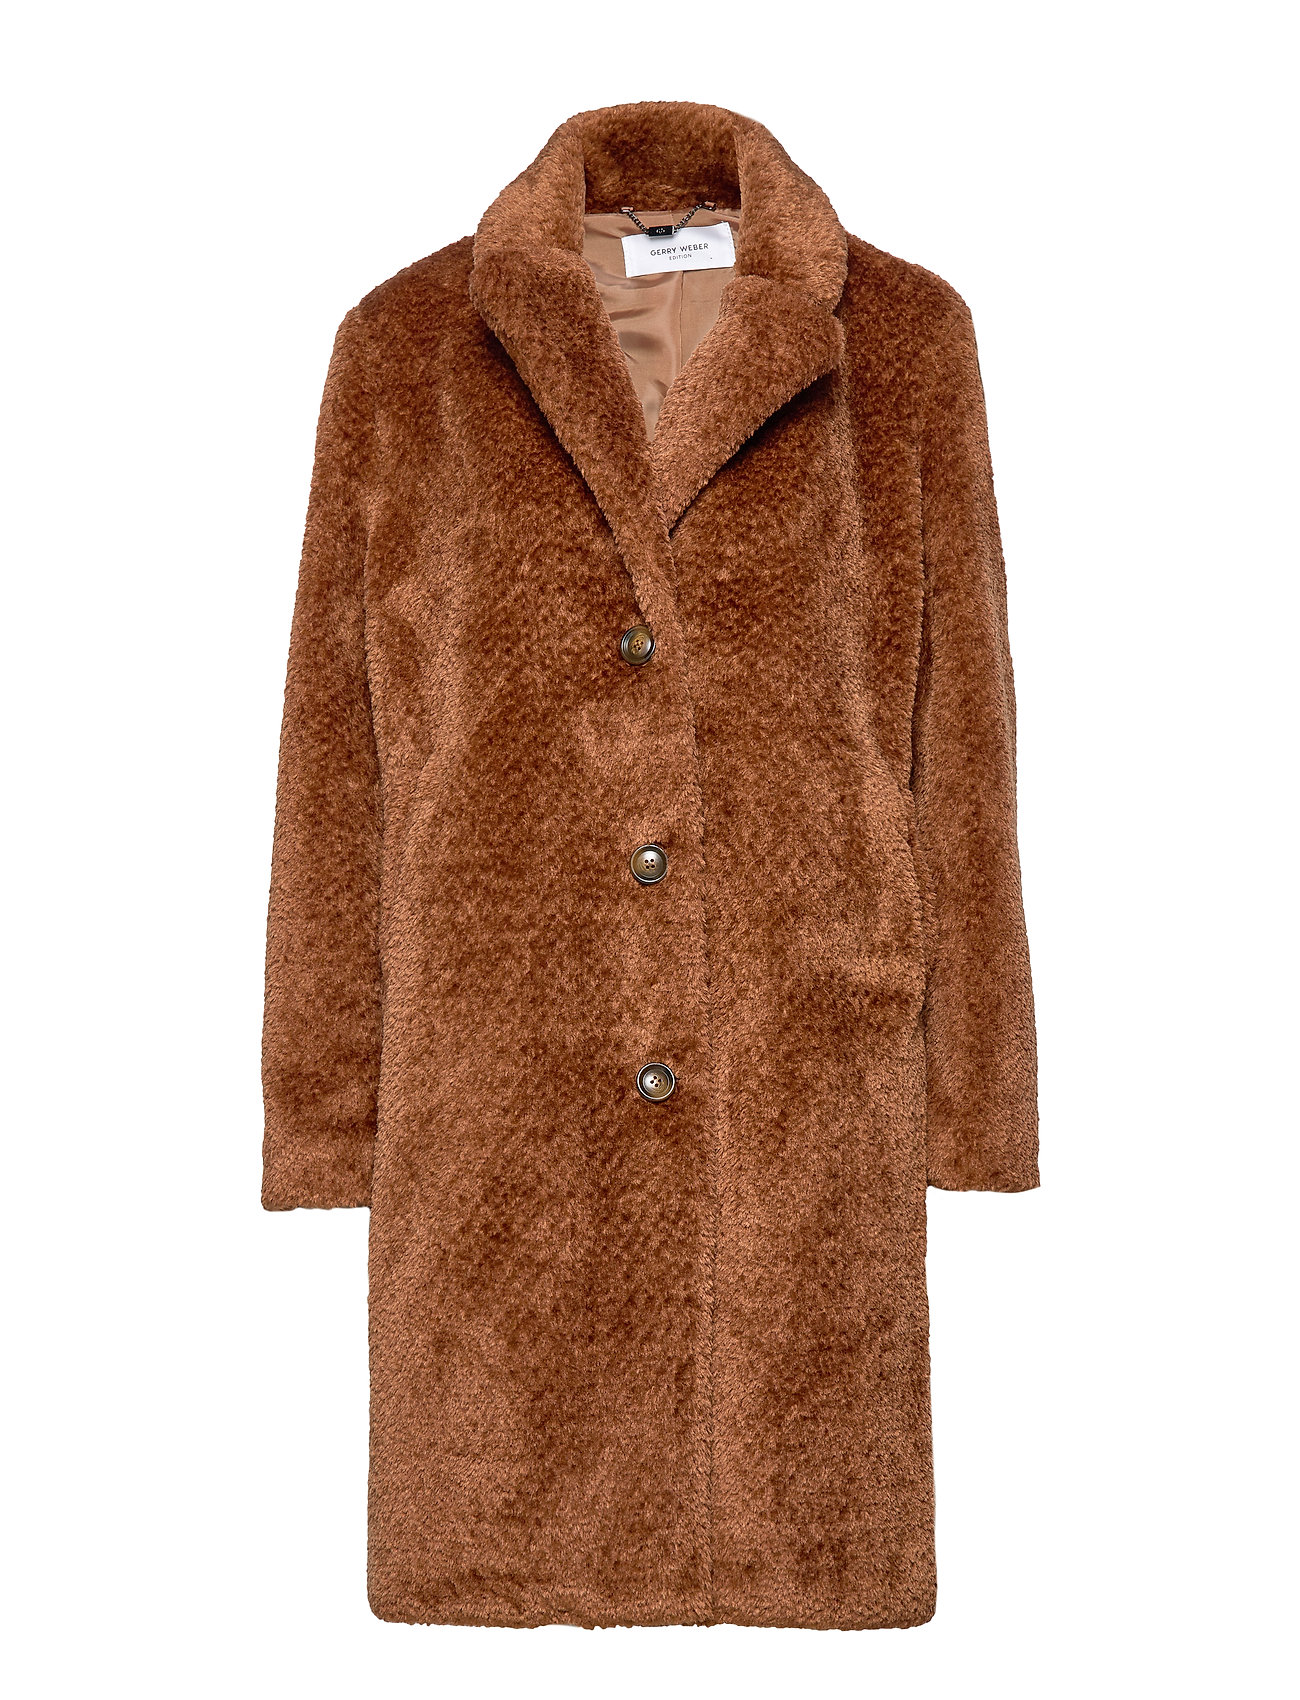 Gerry Weber Edition COAT NOT WOOL - TOBACCO